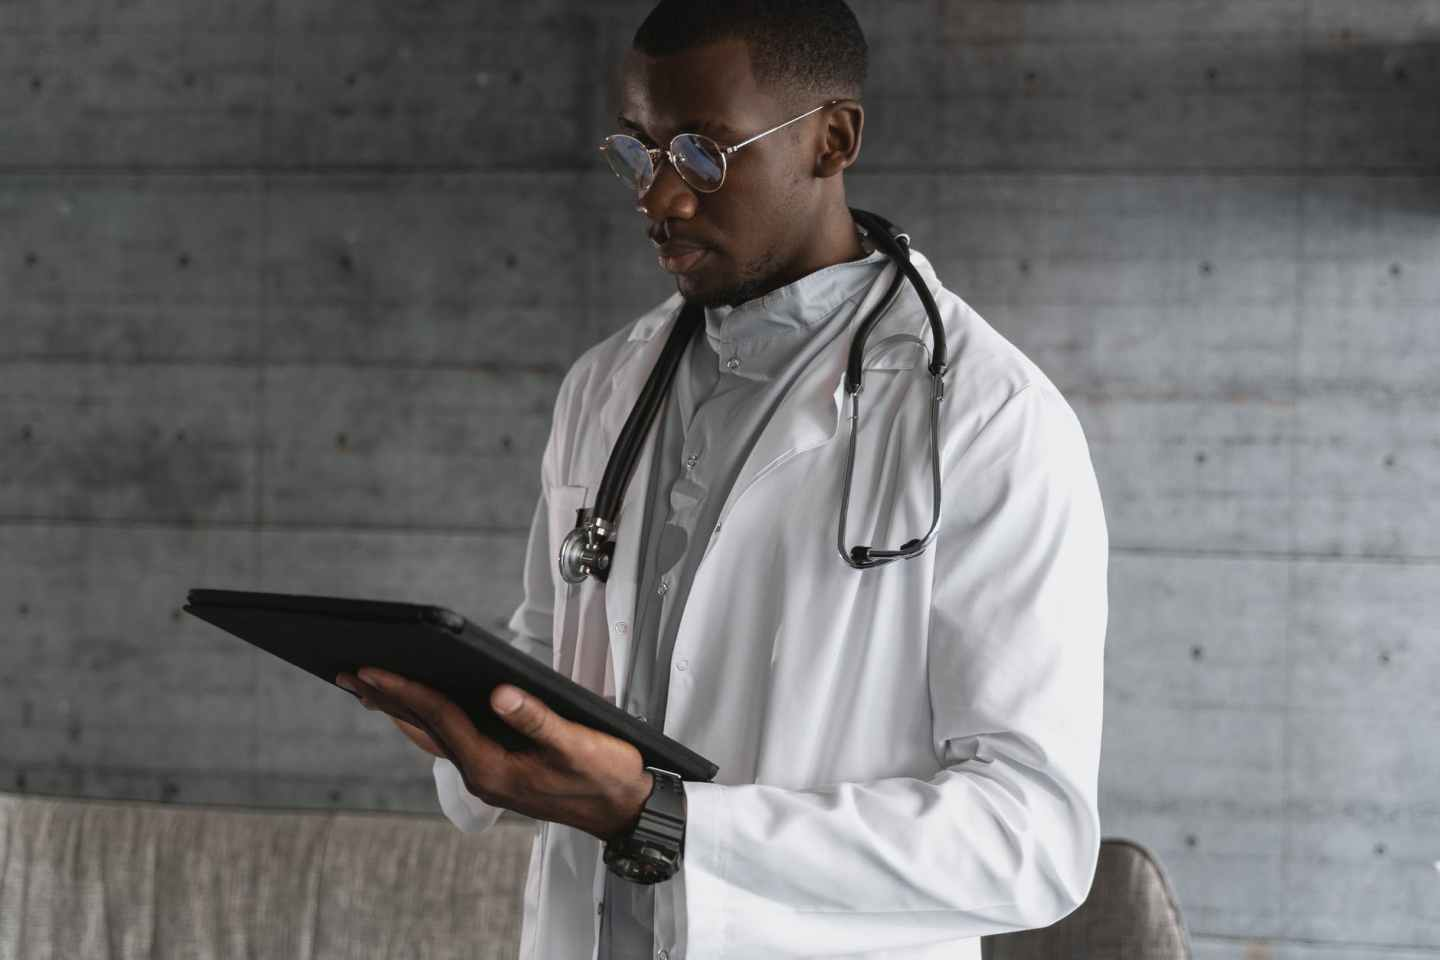 man in white coat holding black tablet computer